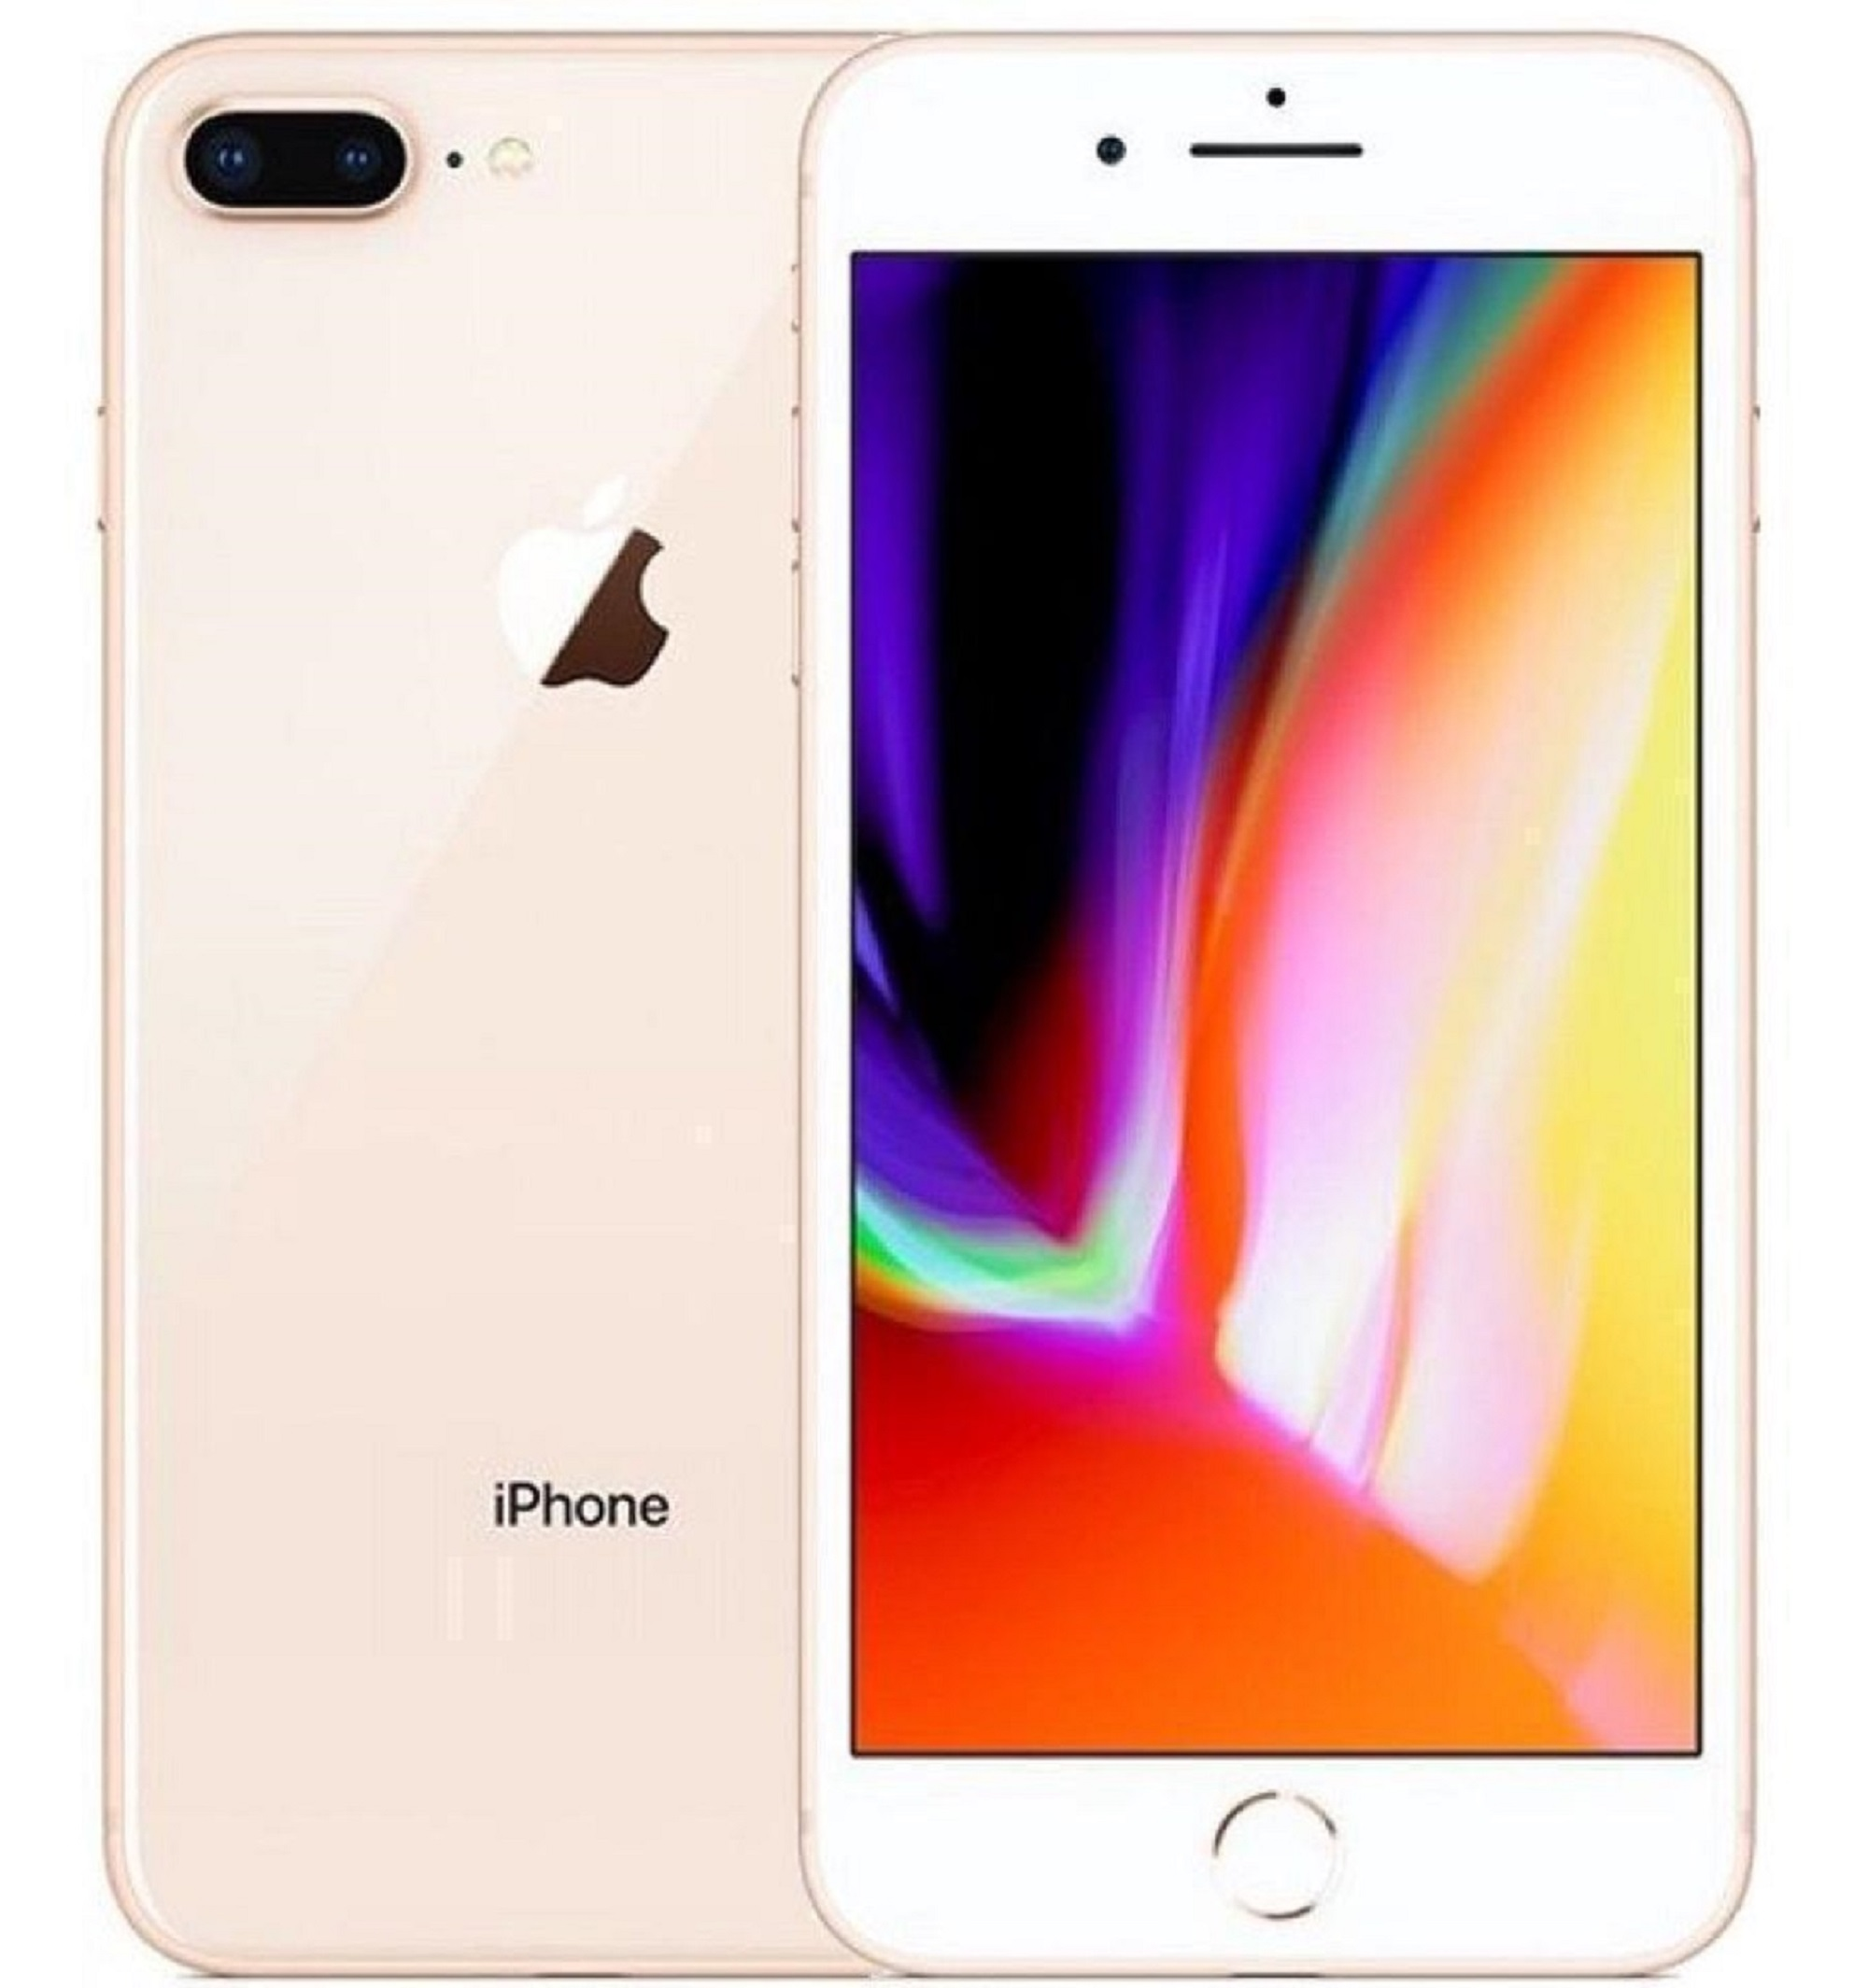 thumbnail 4 - Apple iPhone 8 Plus 64GB Factory Unlocked Smartphone